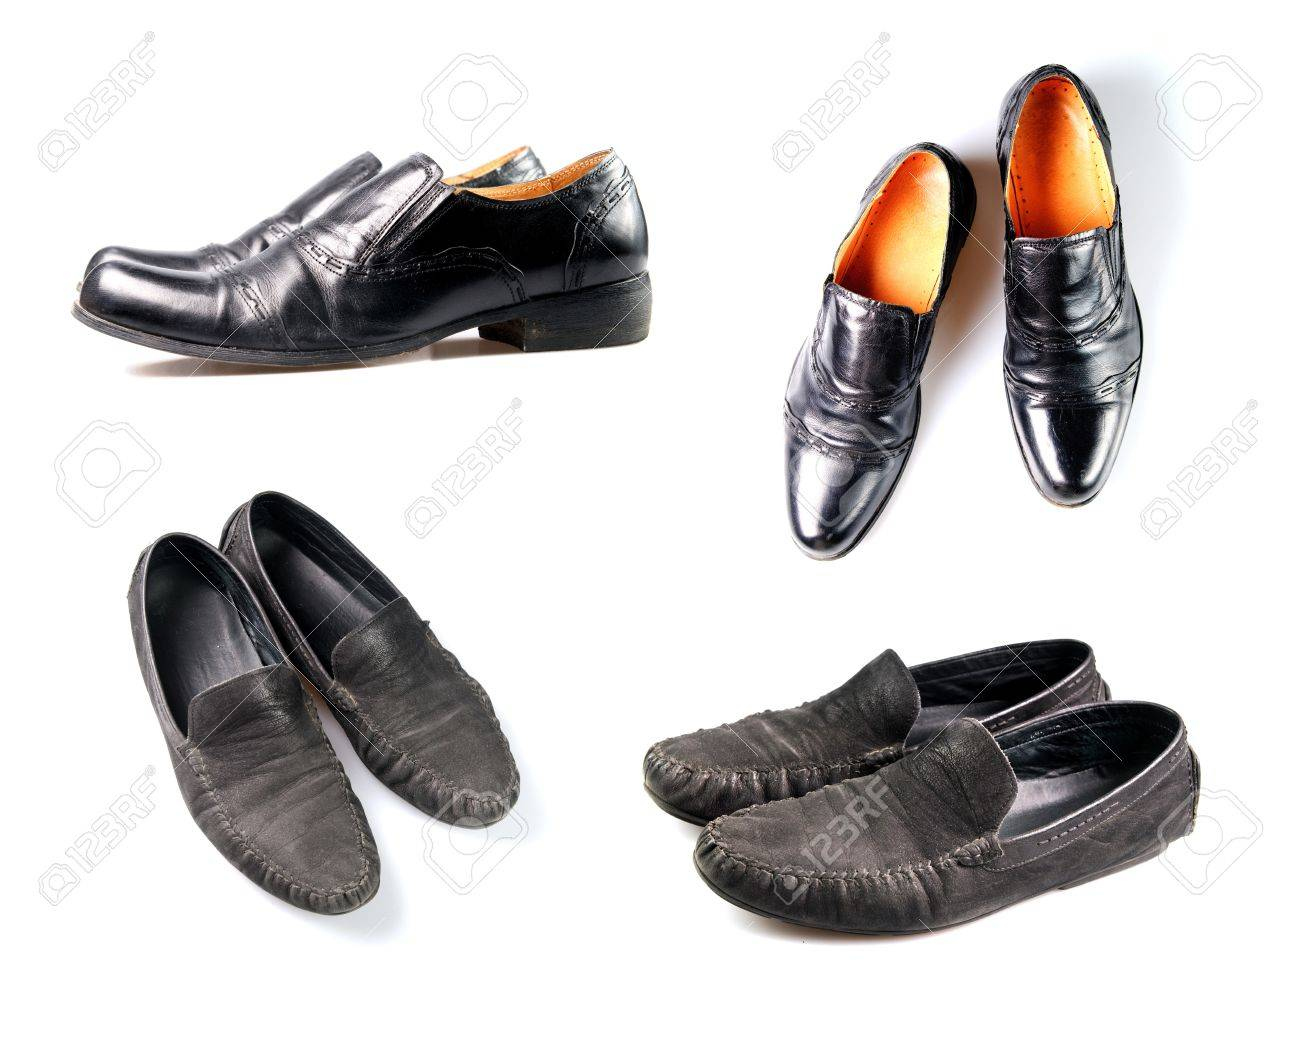 4 pair of used shoes over white background Stock Photo - 8395609